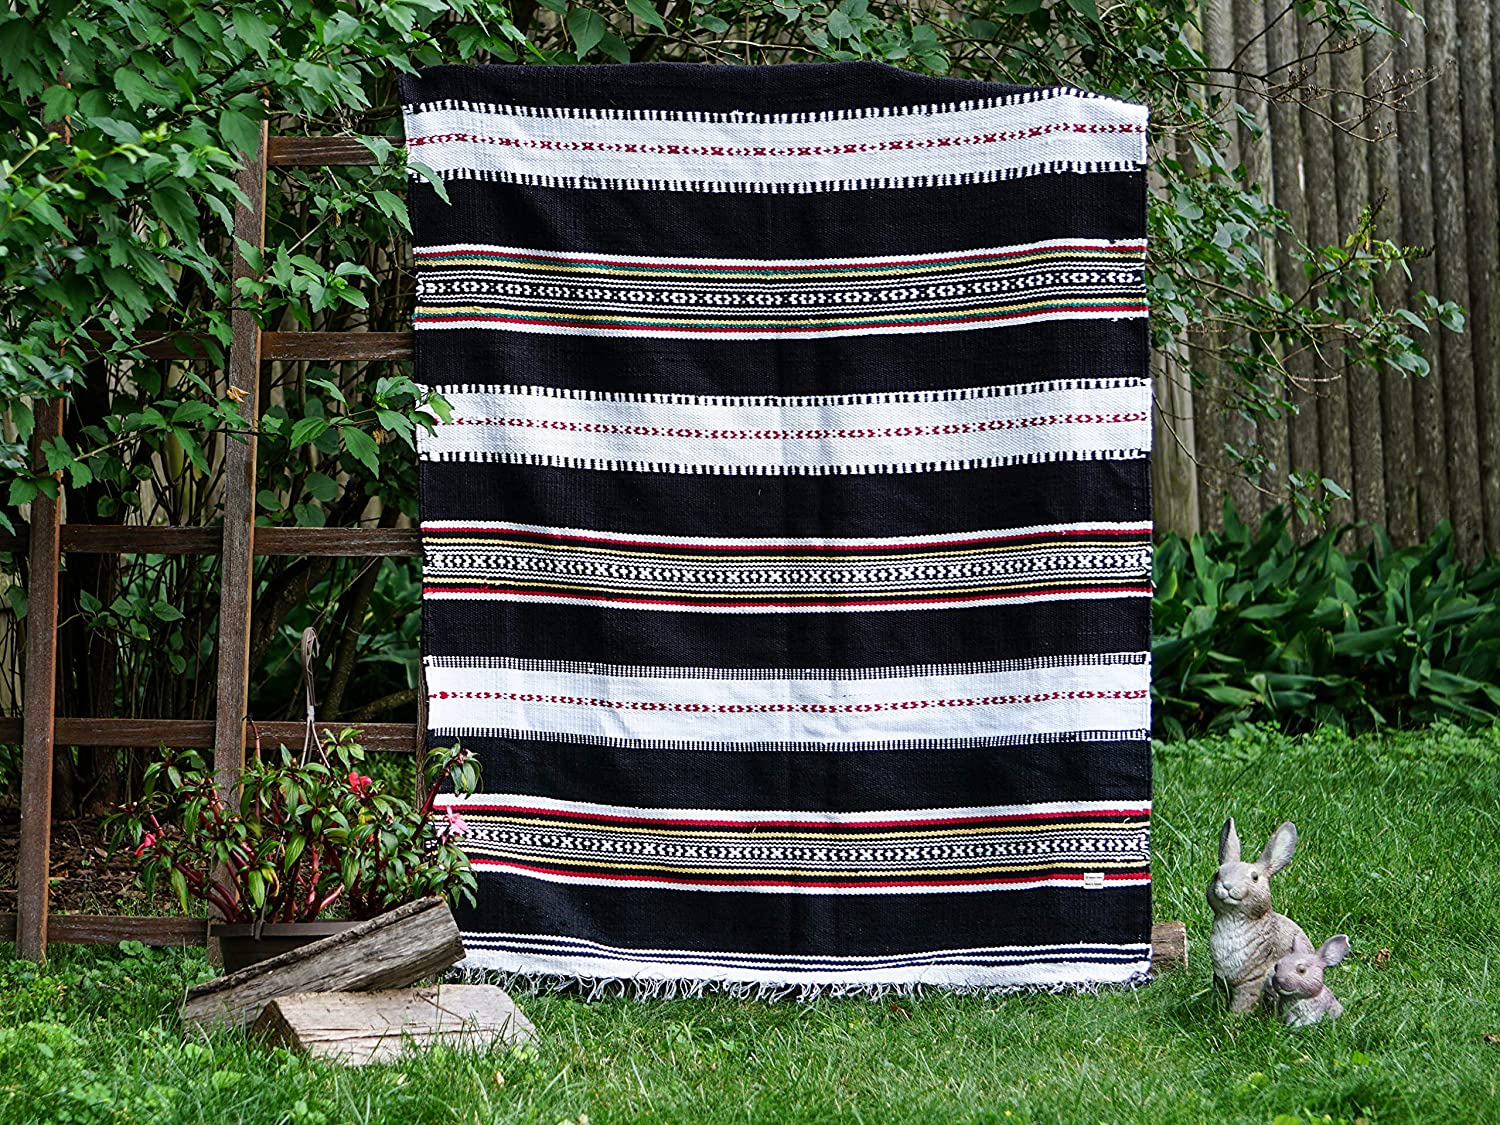 Image of Home and Kitchen Aasma's Dream Boho Blanket | Handwoven Authentic | Perfect Beach Blanket, Camping Blanket, Blanket and Throws